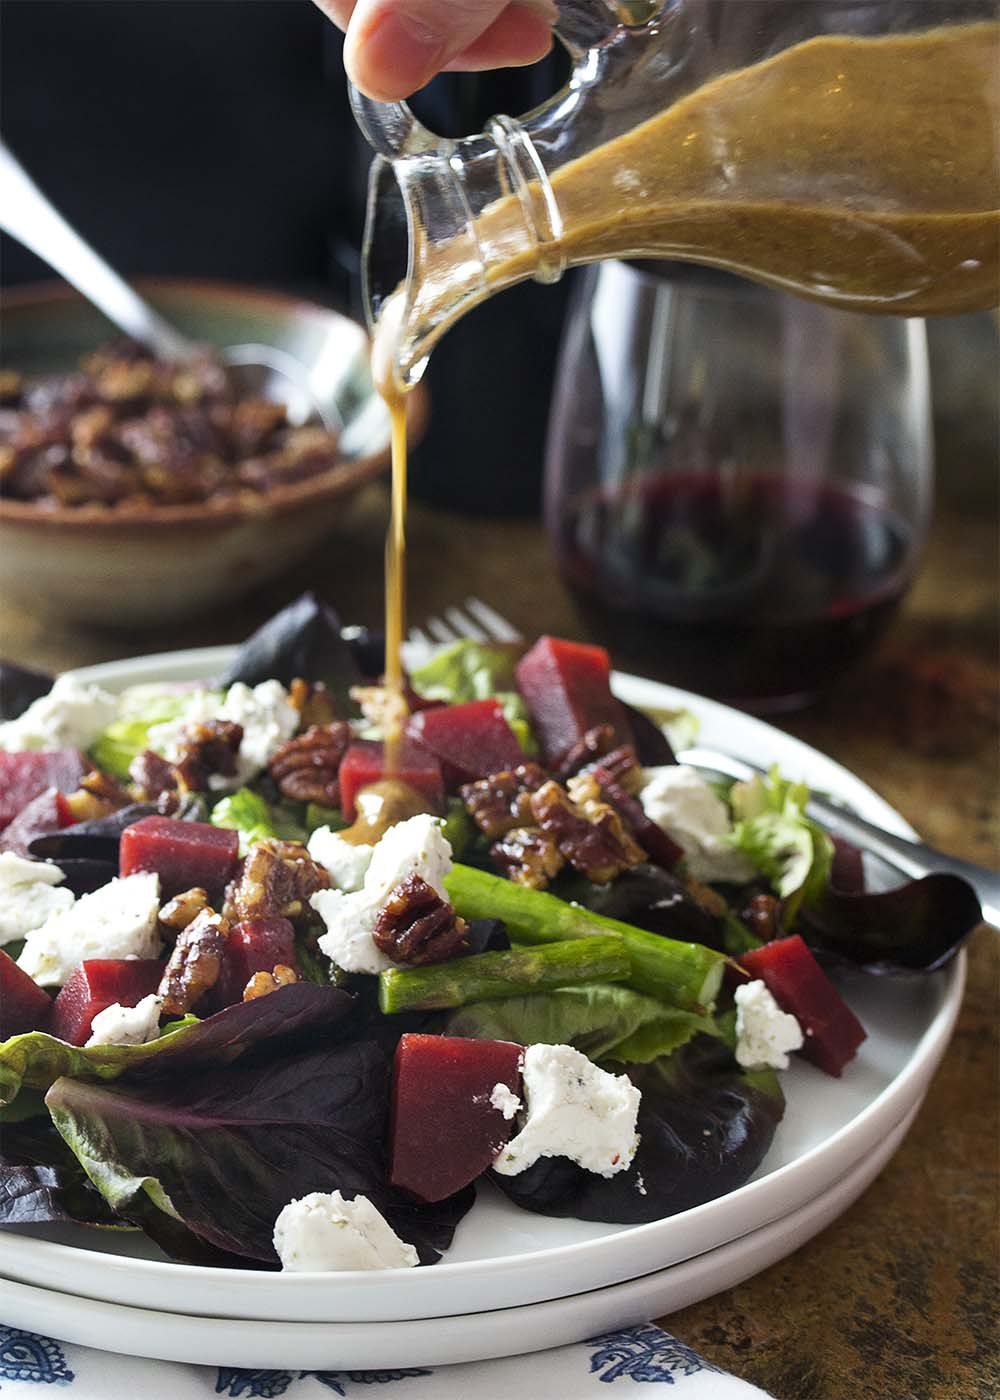 Pouring mustard balsamic dressing over a plate of French country salad topped with goat cheese and pecans.